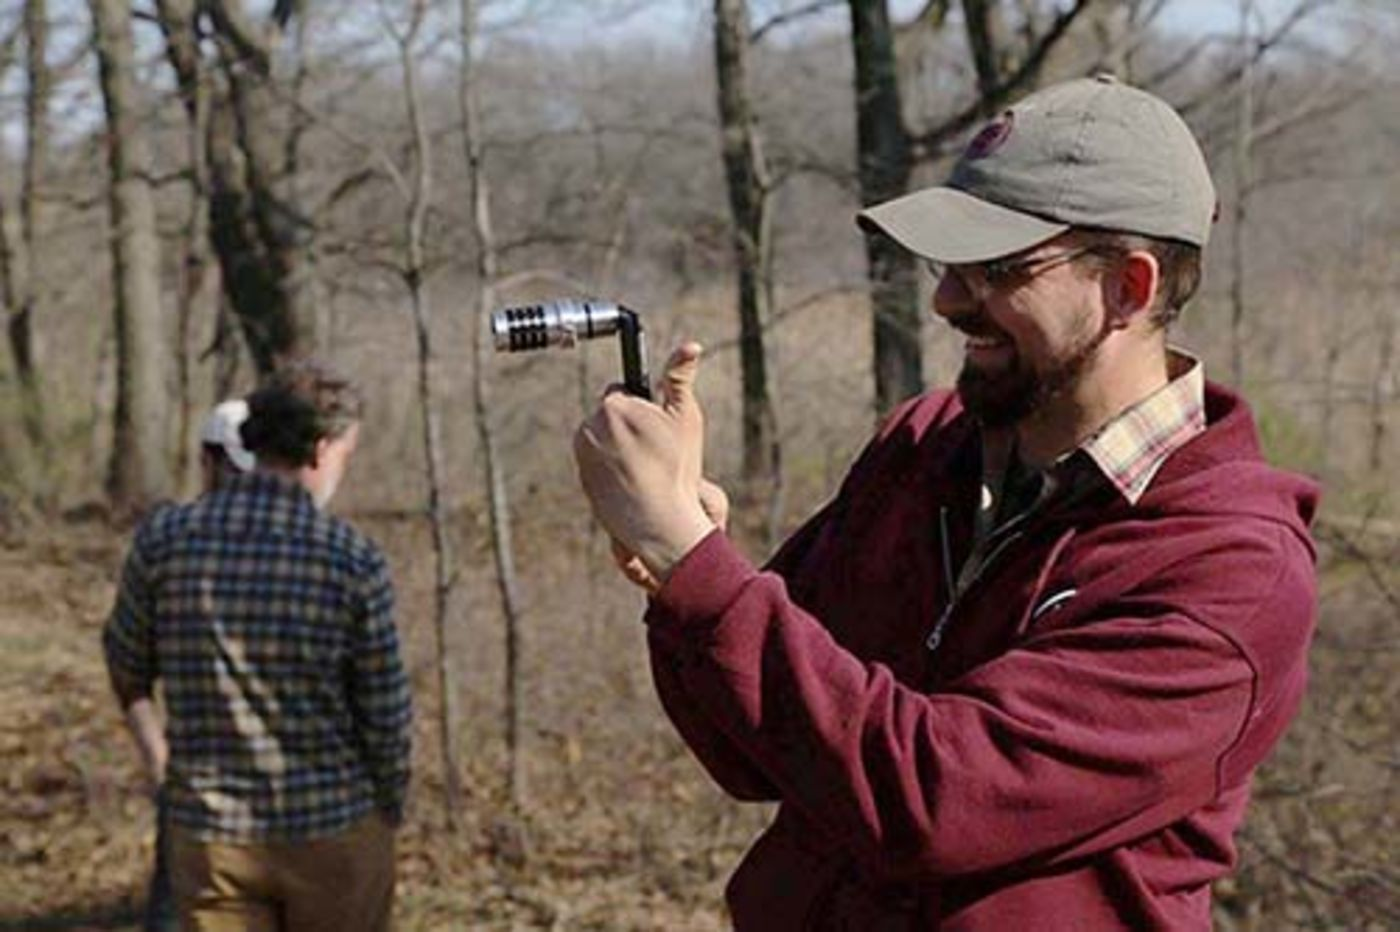 A man in a wooded area taking a photo with a zoom lens